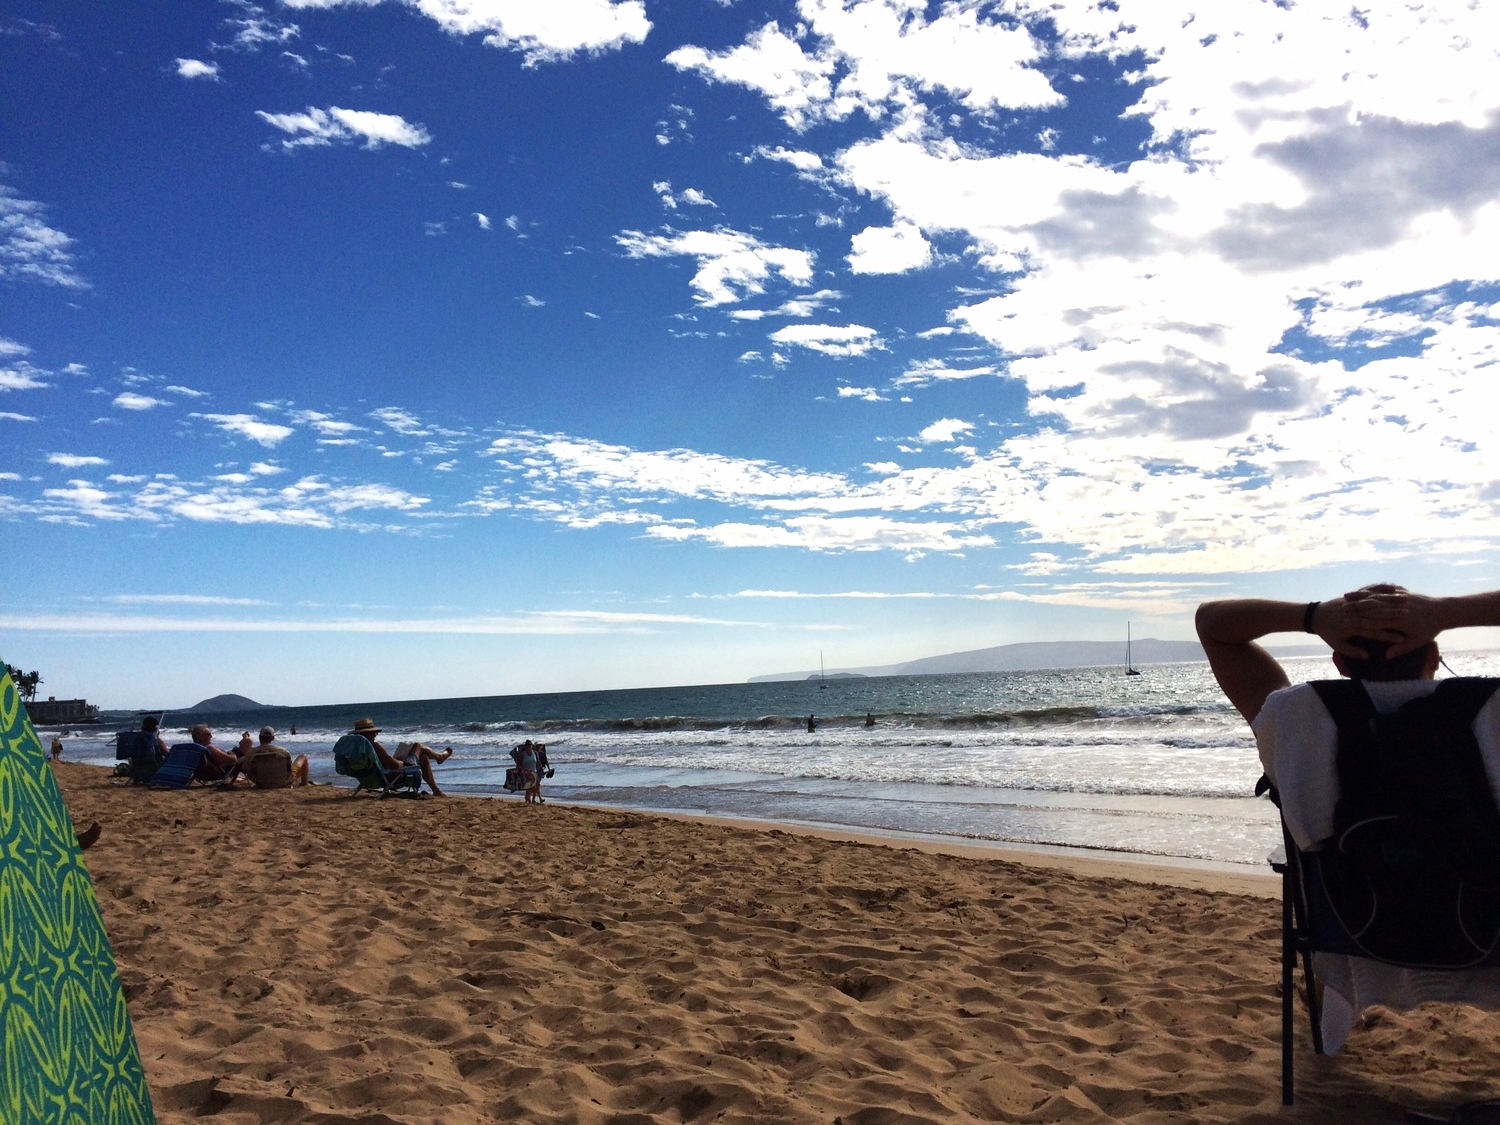 Relaxing on Charley Young Beach in Kehei, Maui